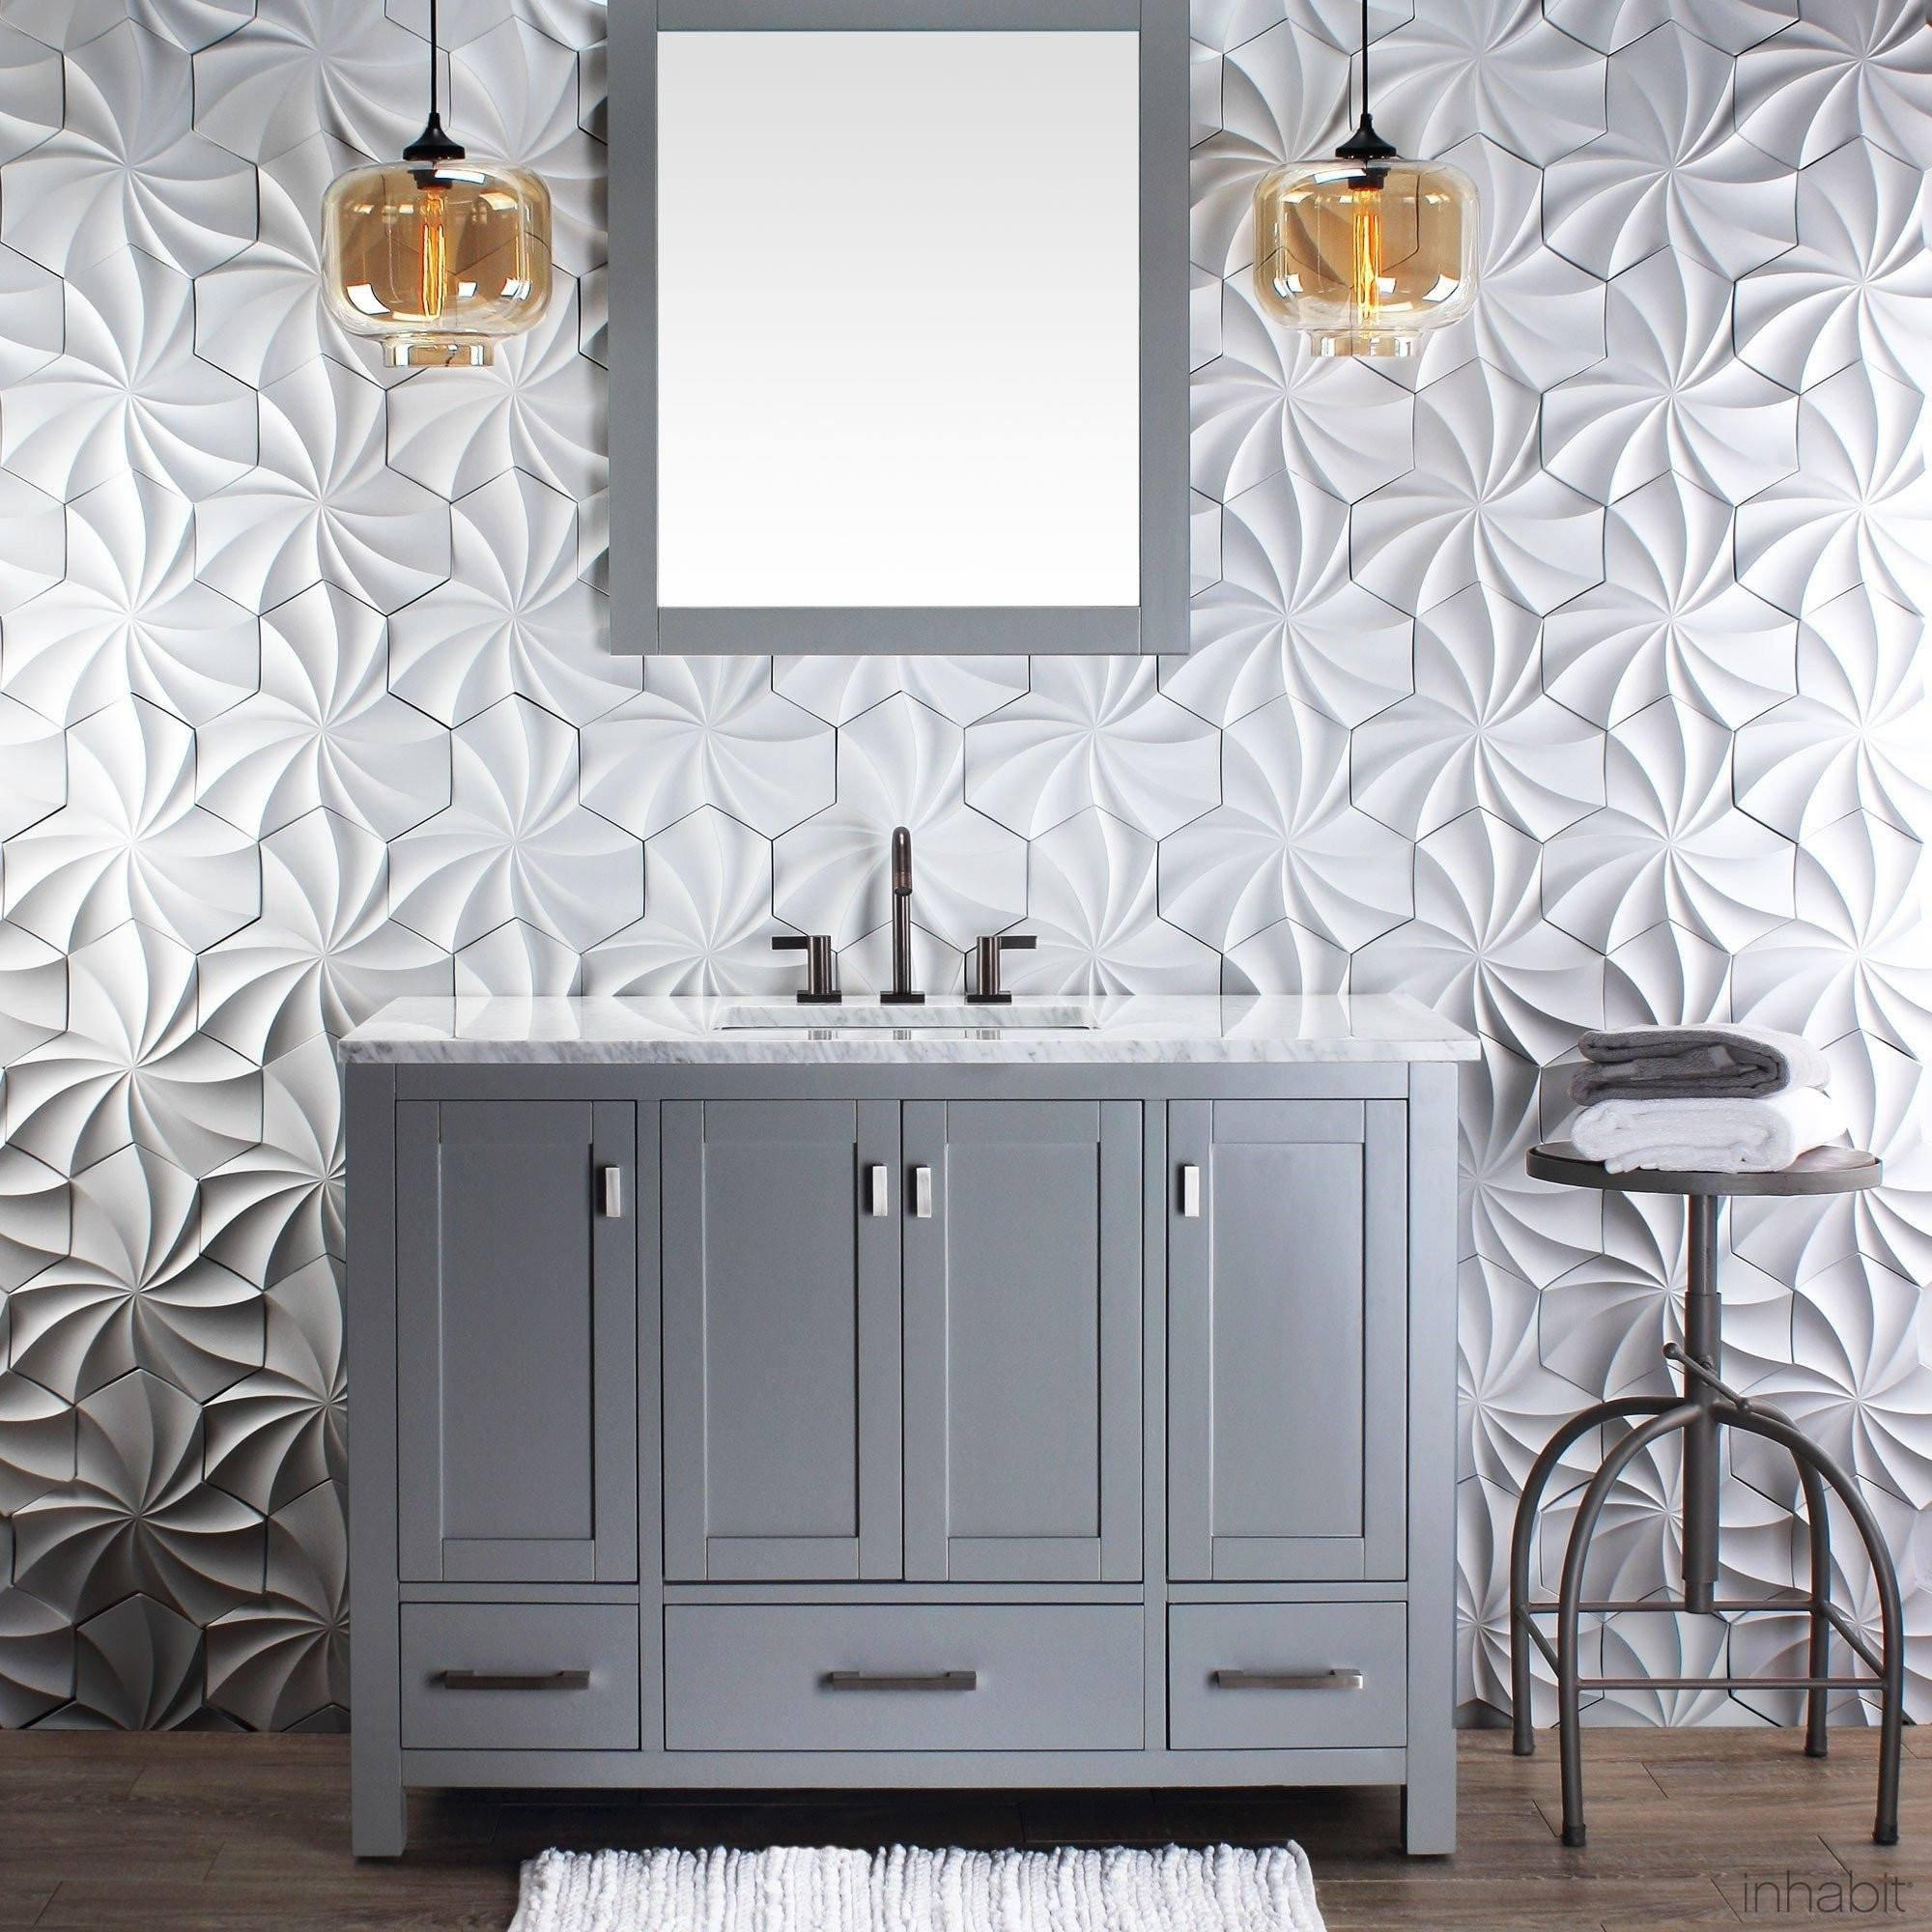 Dimensional Wall Tiles| Kaleidoscope Architectural Concrete Tile in ...